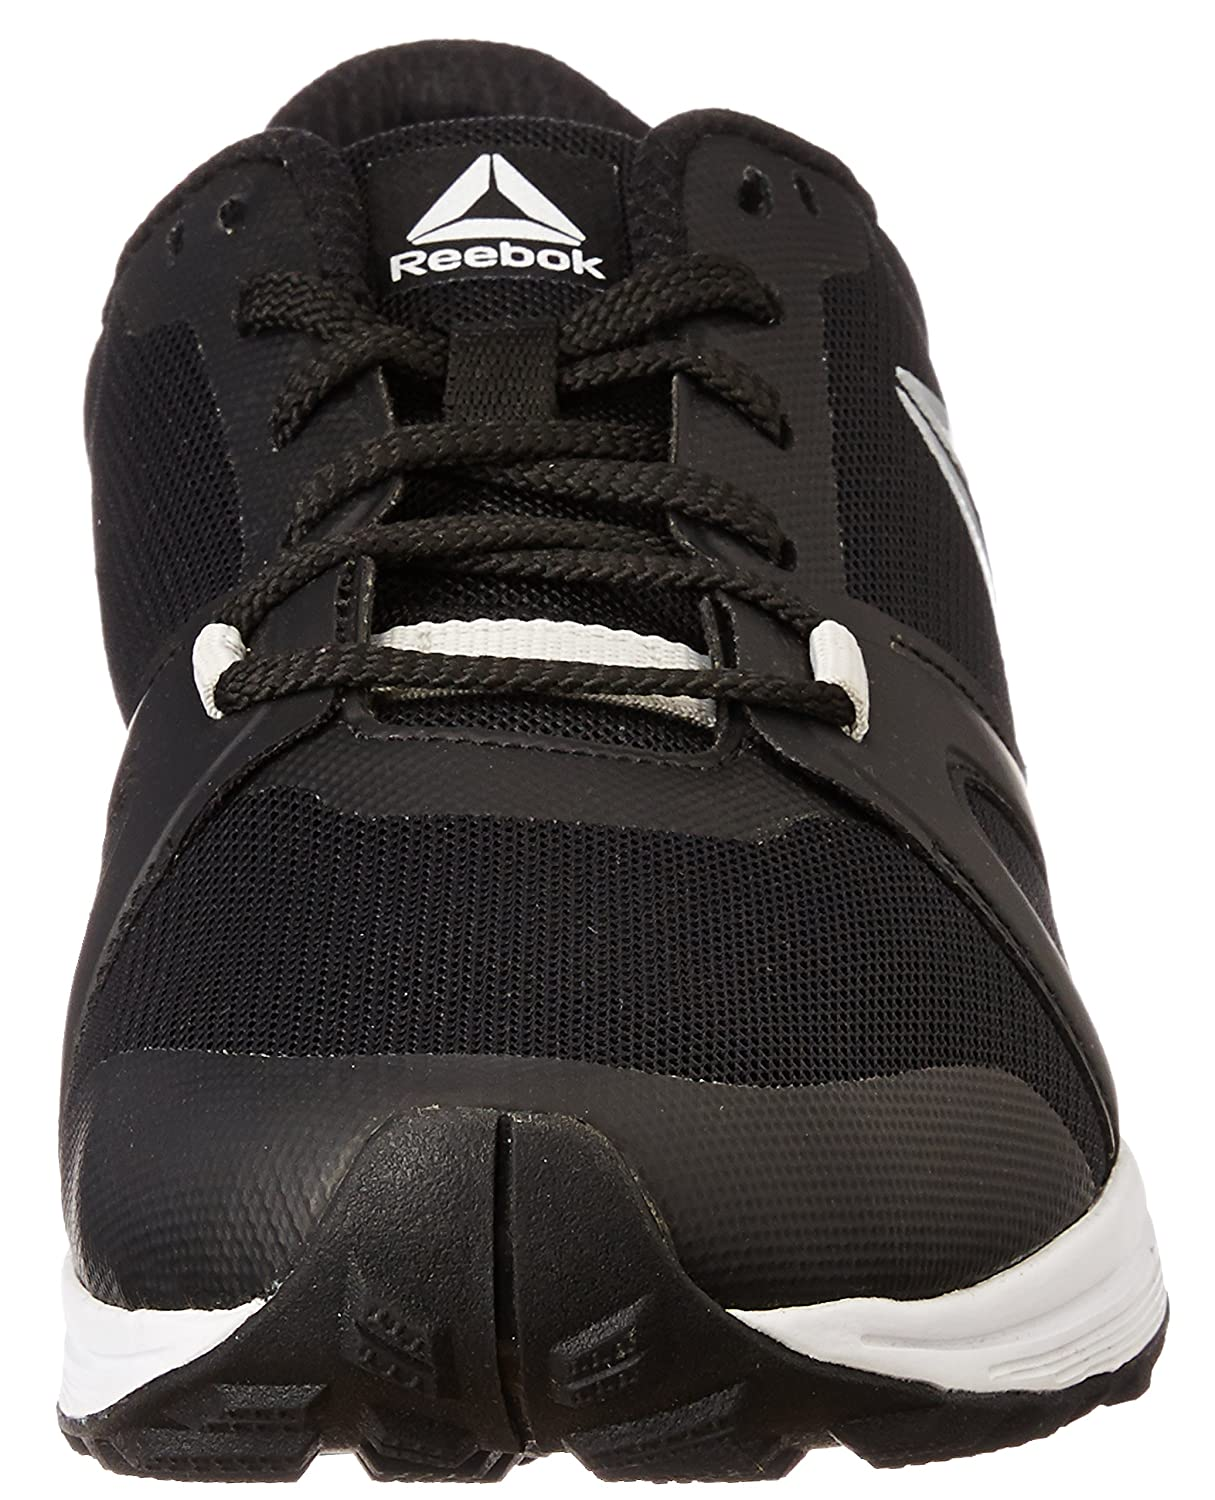 f344d85222c Reebok Men s Mighty Trainer Black Skull Grey Multisport Training Shoes-6 UK  India (39 EU) (7 US) (CN3682)  Buy Online at Low Prices in India - Amazon.in